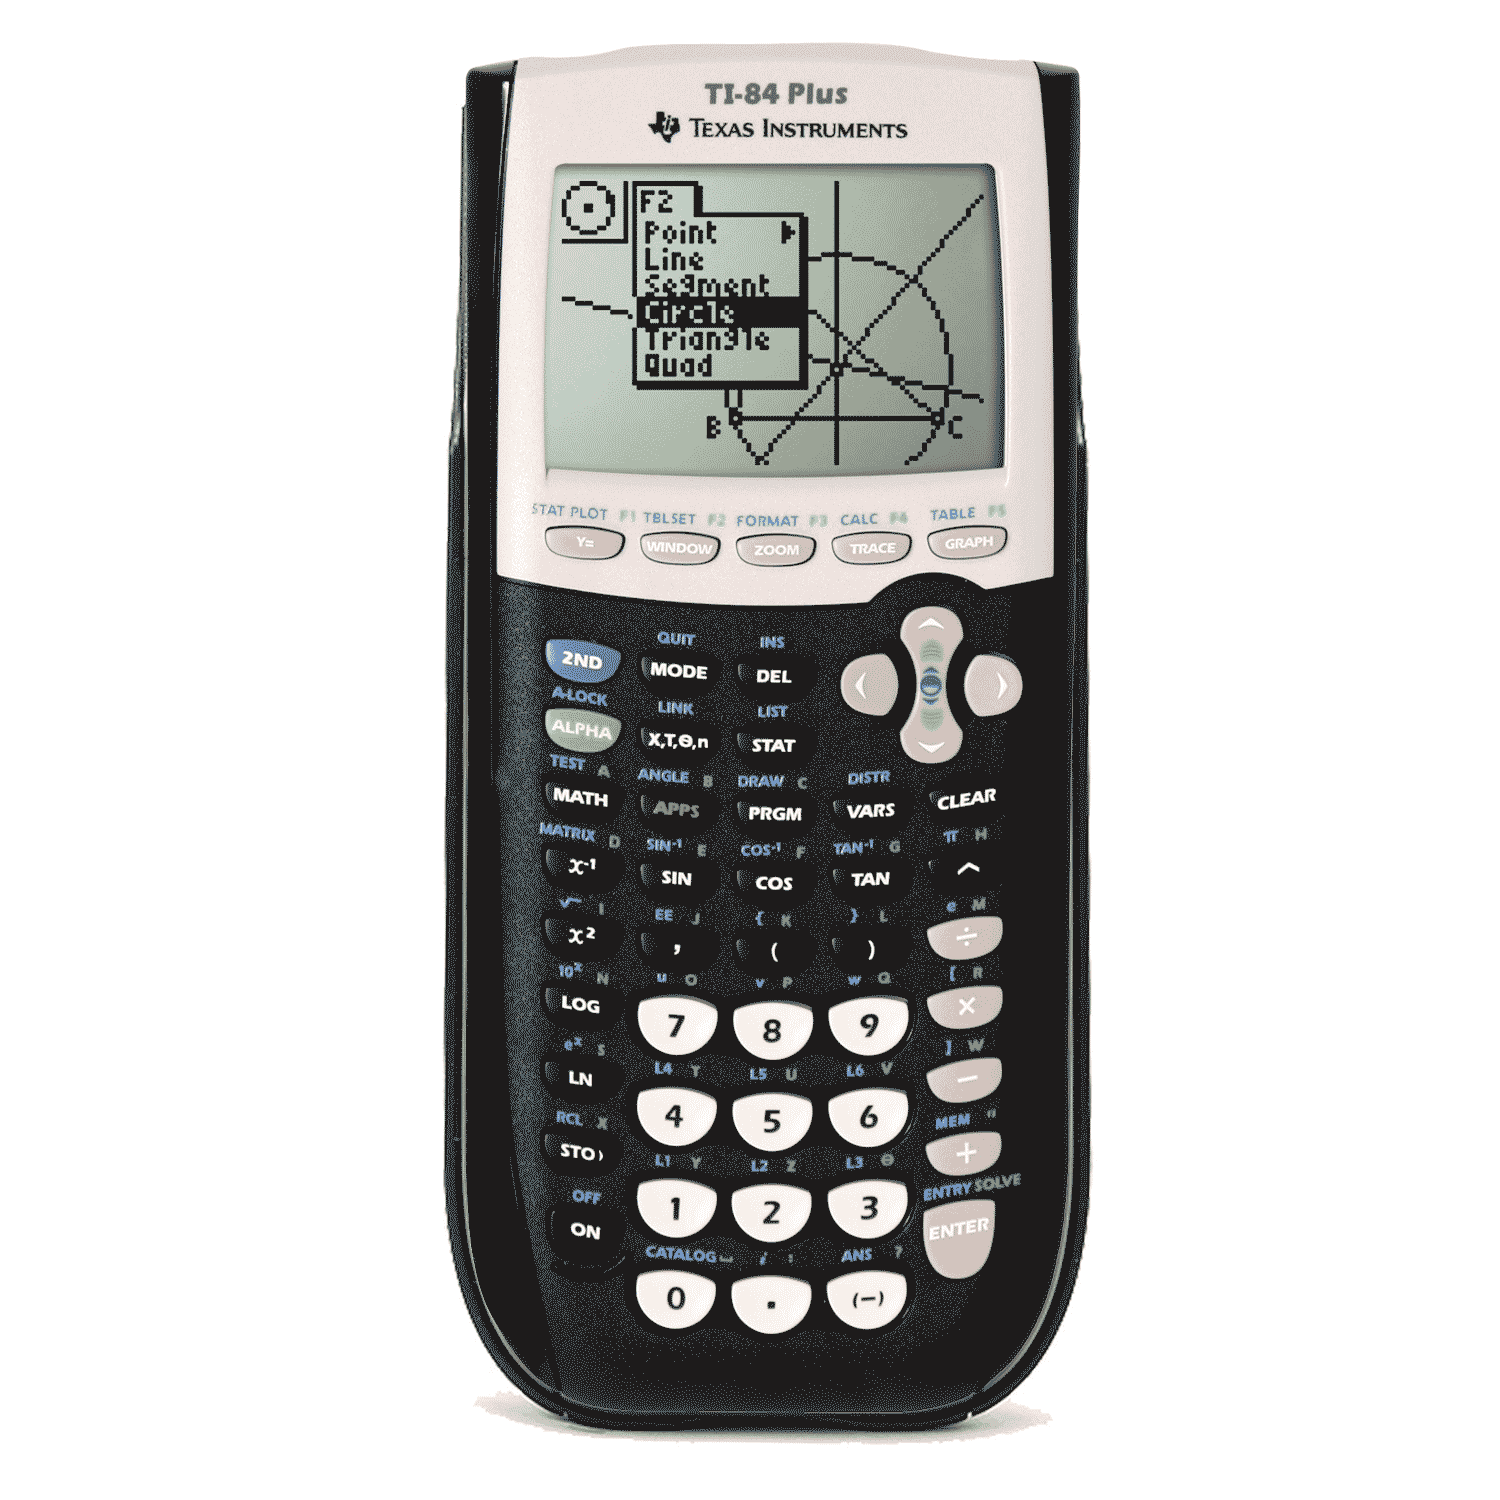 This image is of a calculator that is used by students in this course.